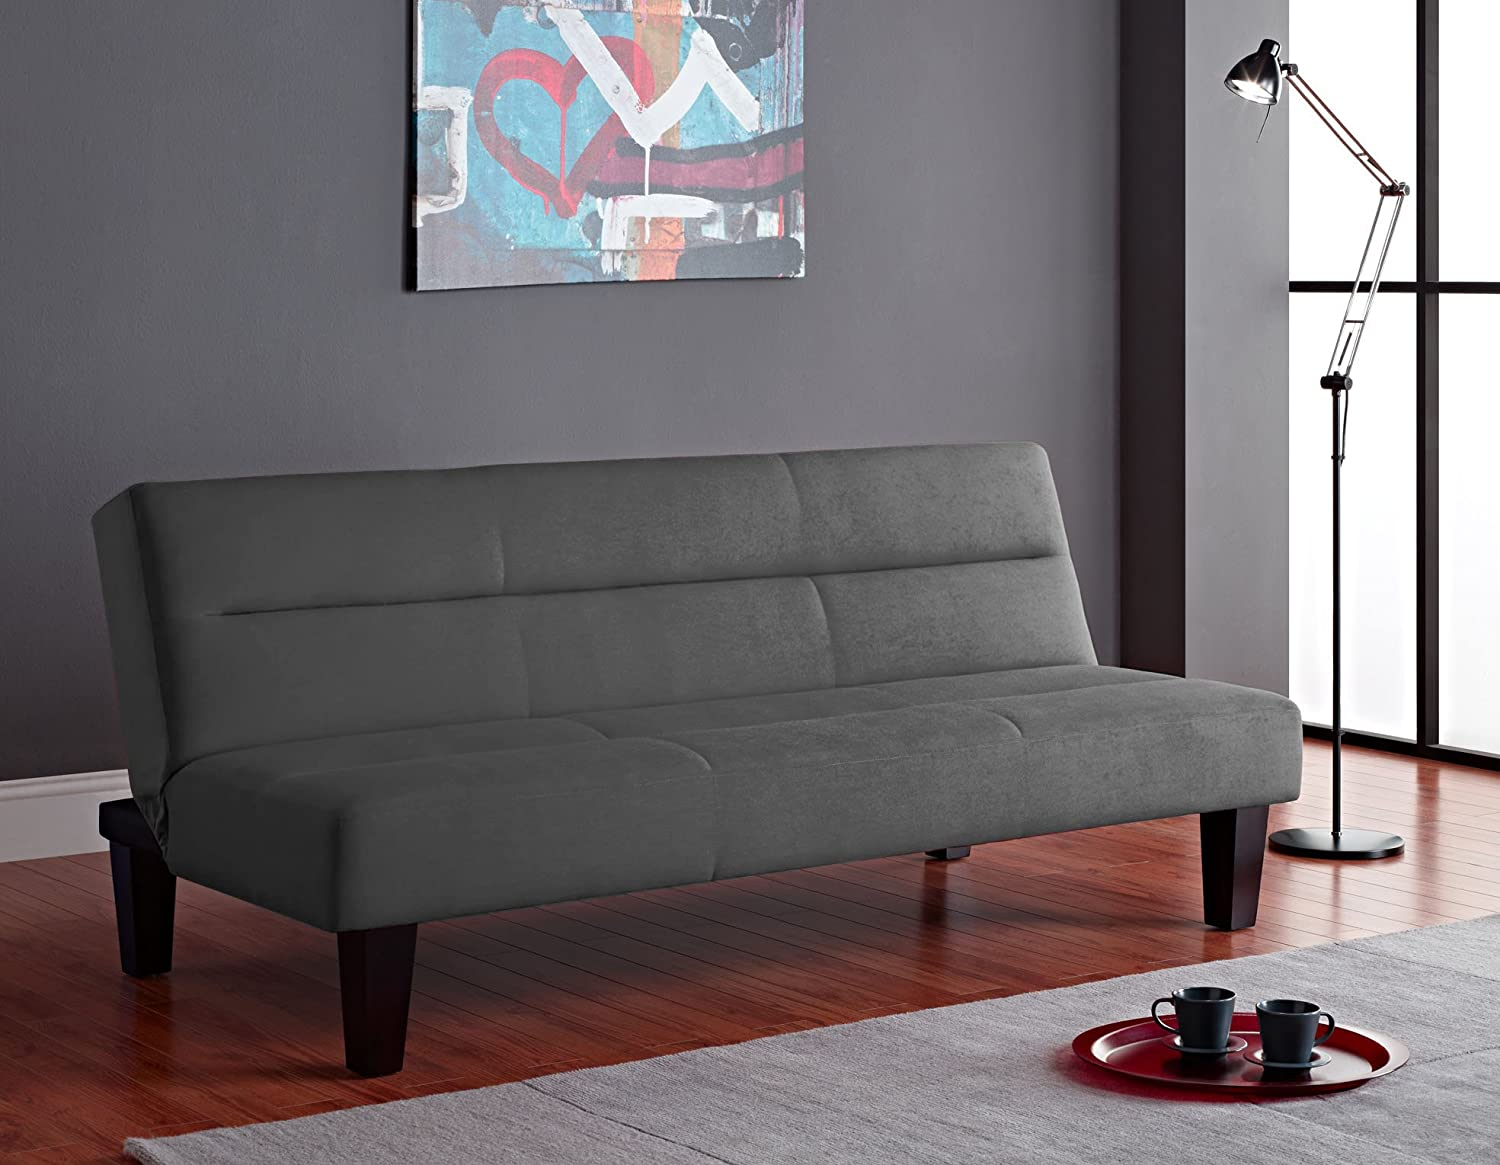 Dorel Home Products Kebo Futon Sofa Bed, Charcoal: Amazon.ca: Home & Kitchen